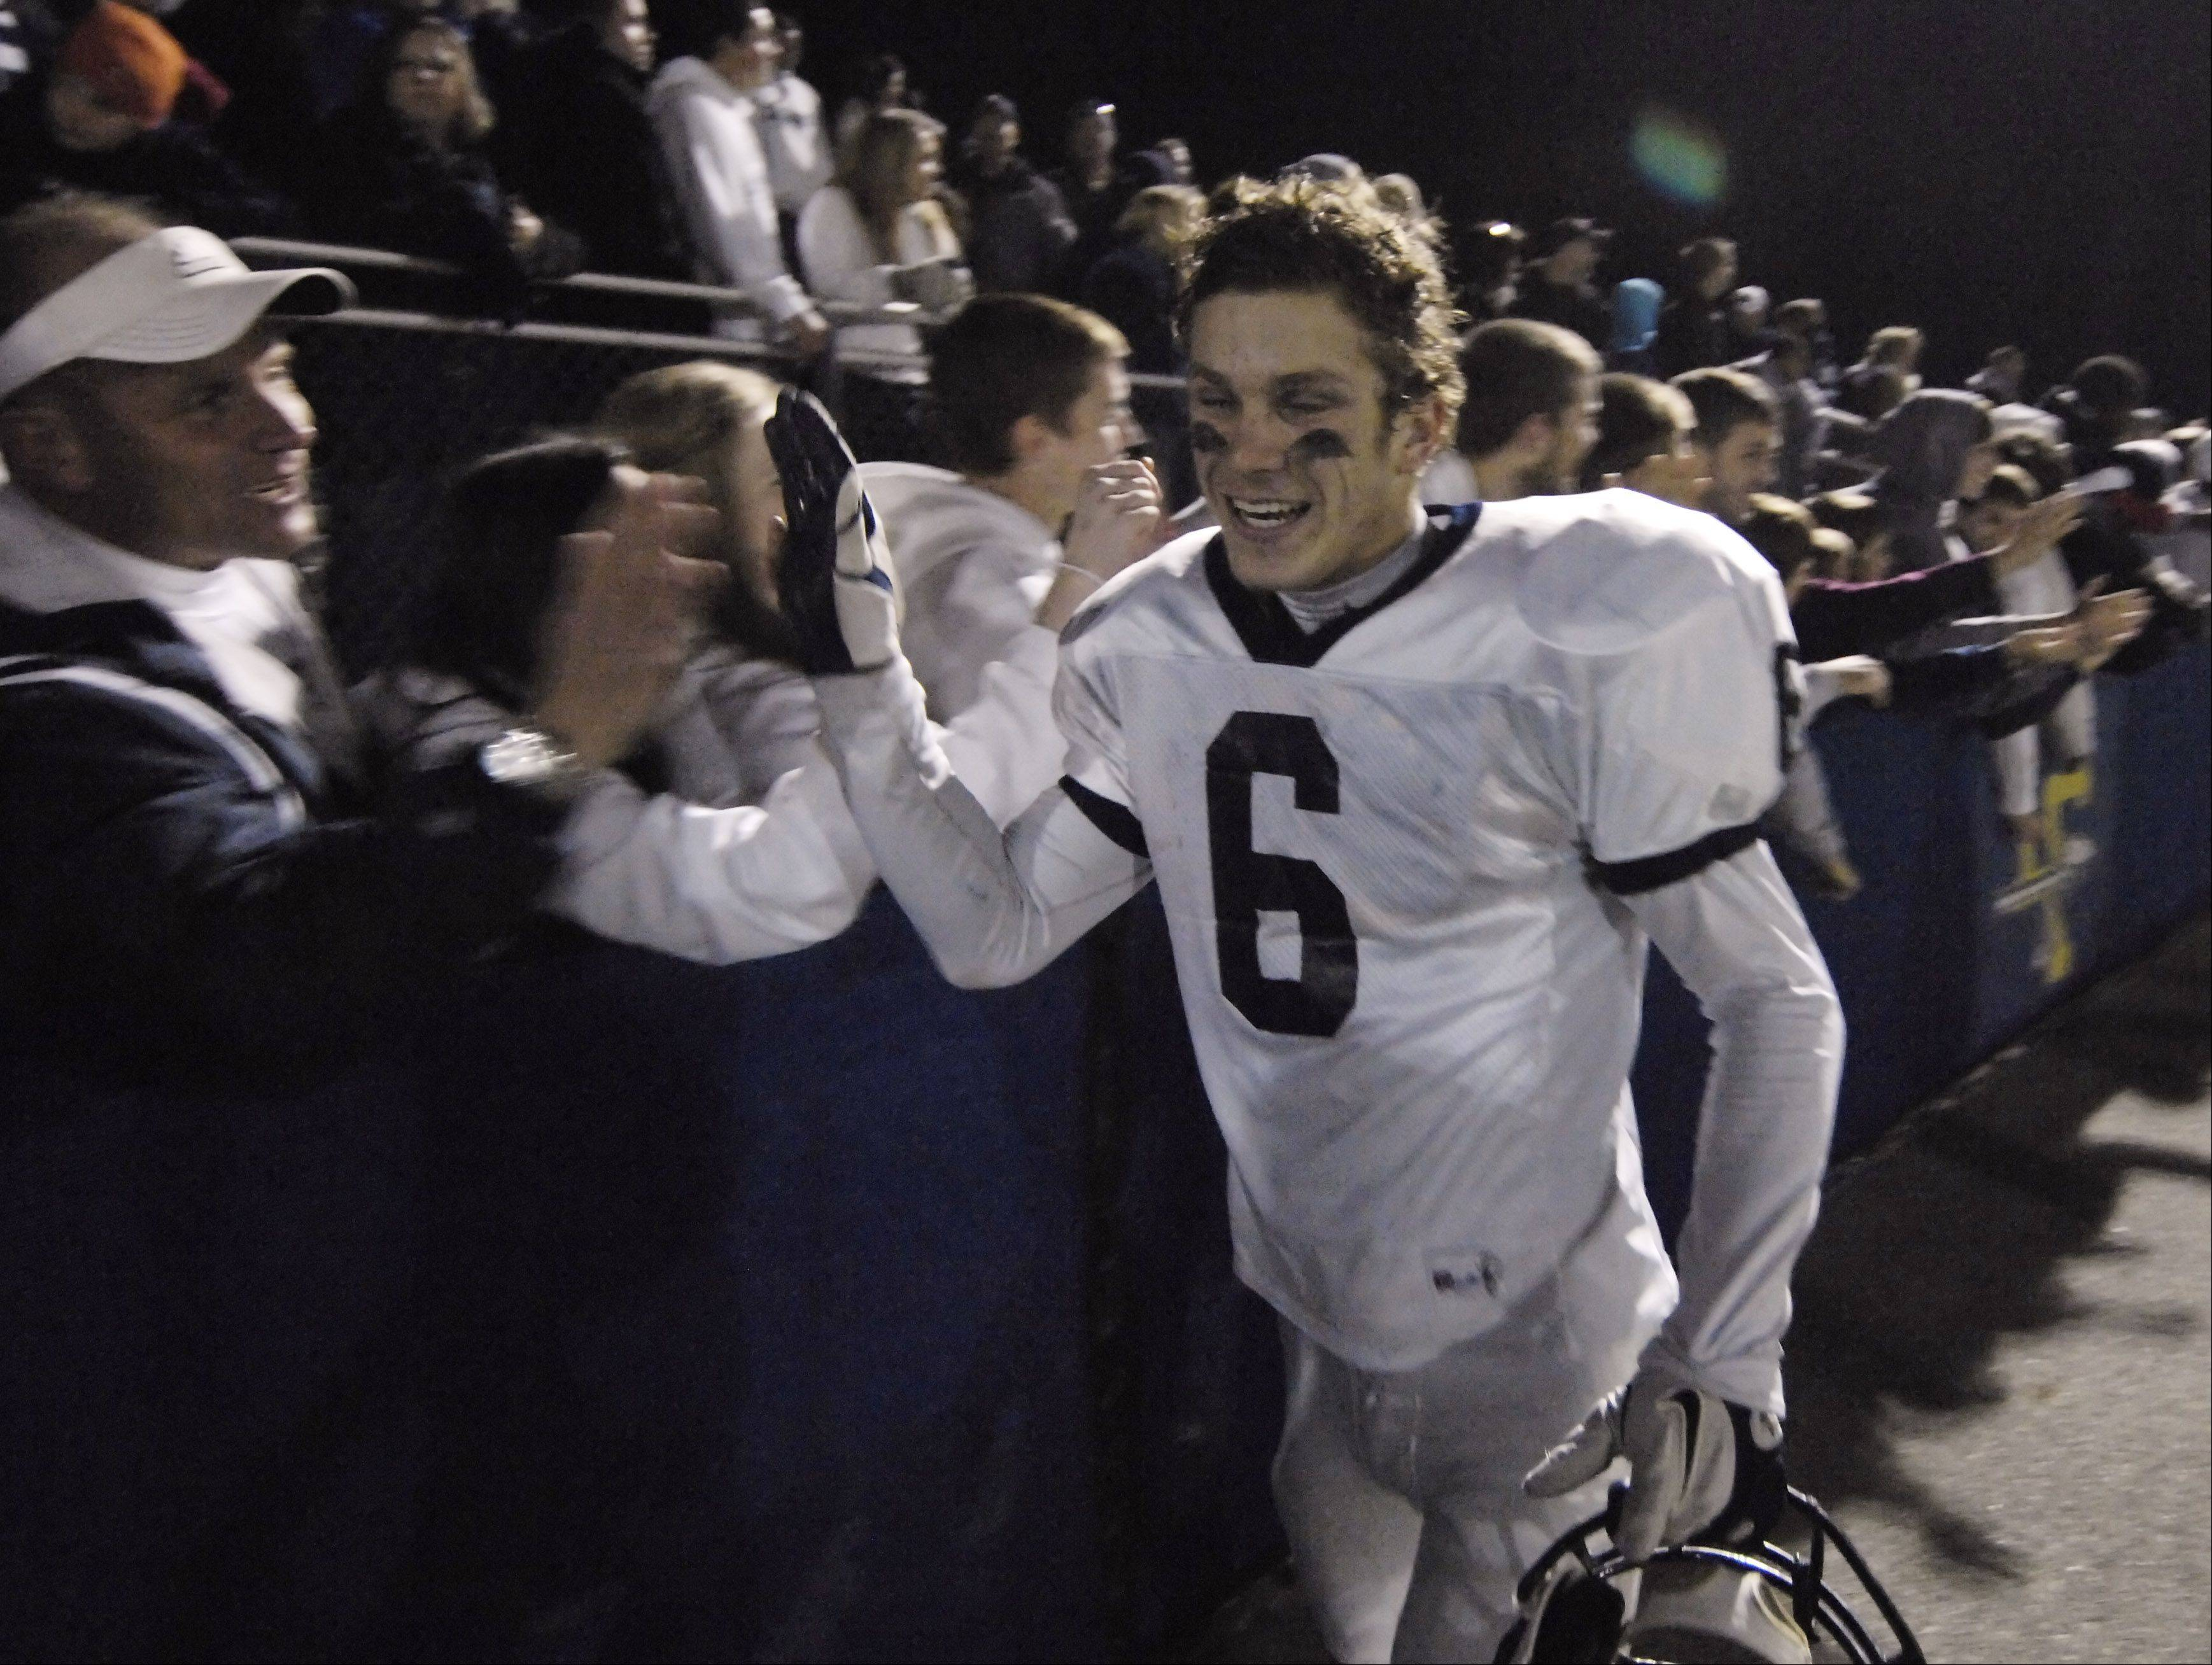 Cary-Grove's Marcus Thimios celebrates with fans after Saturday's victory over Lake Forest in the class 6A football semifinal.